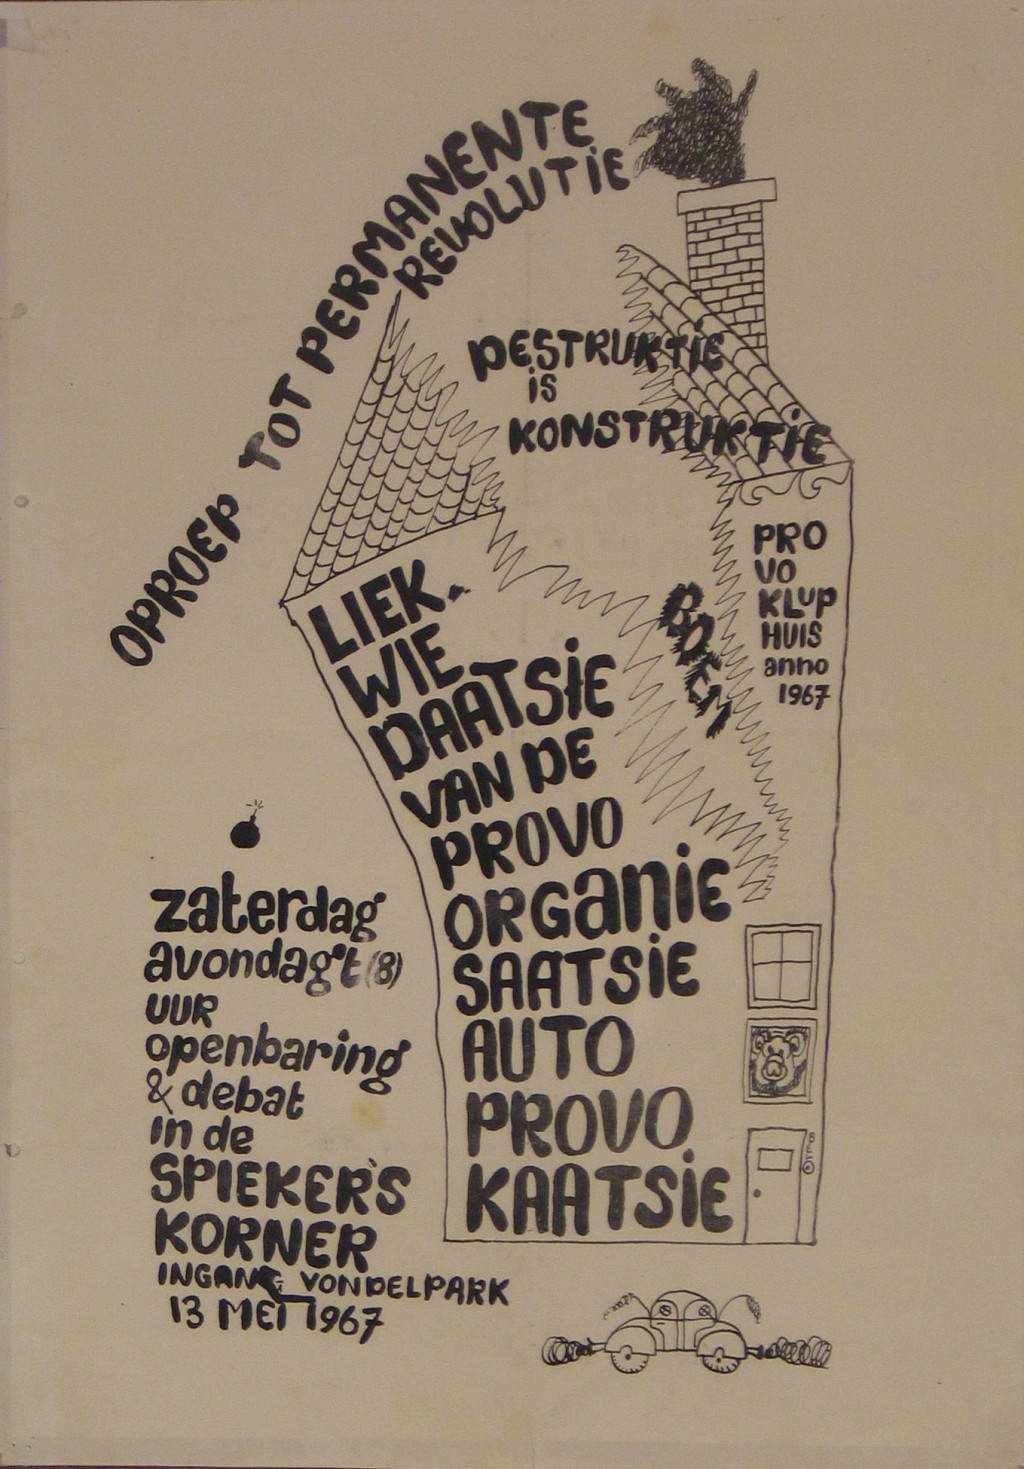 Rob Stolk, Liquidation of the Provo organization, 1967. Collection Stedelijk Museum Amsterdam